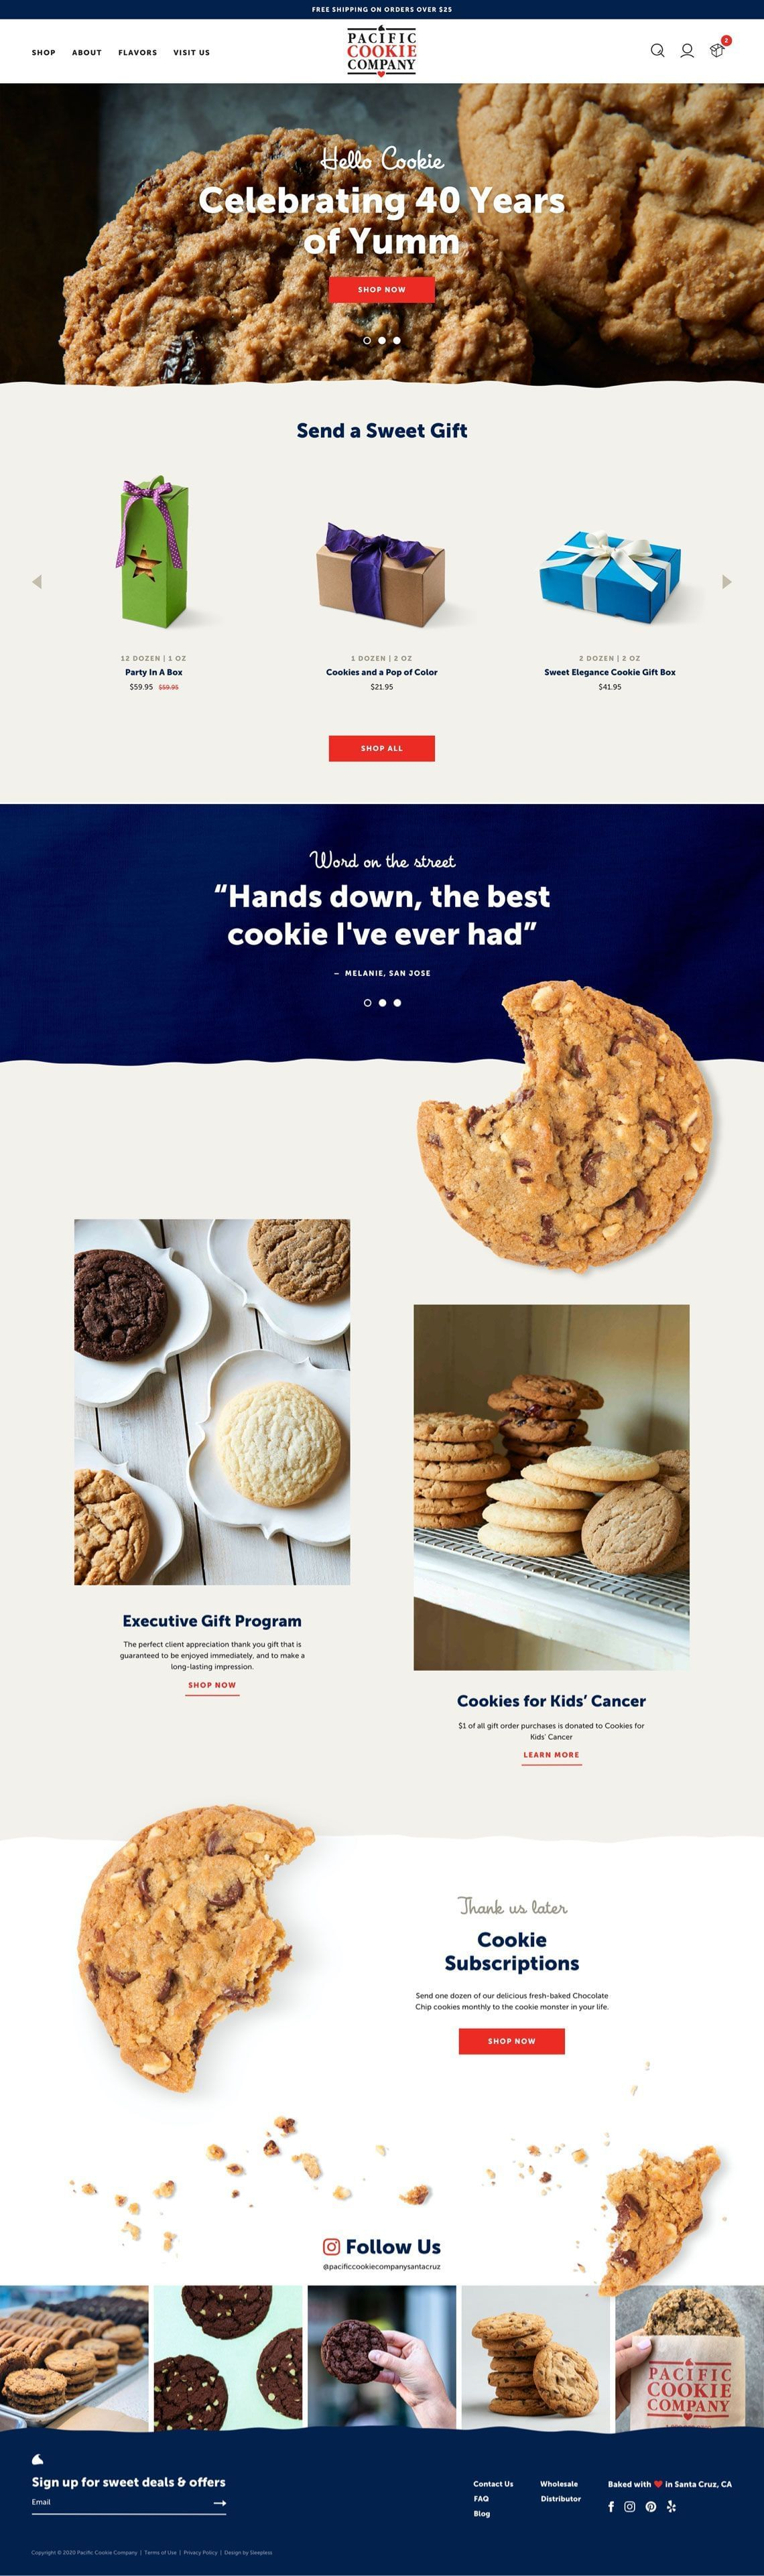 Pacific Cookie Company Homepage